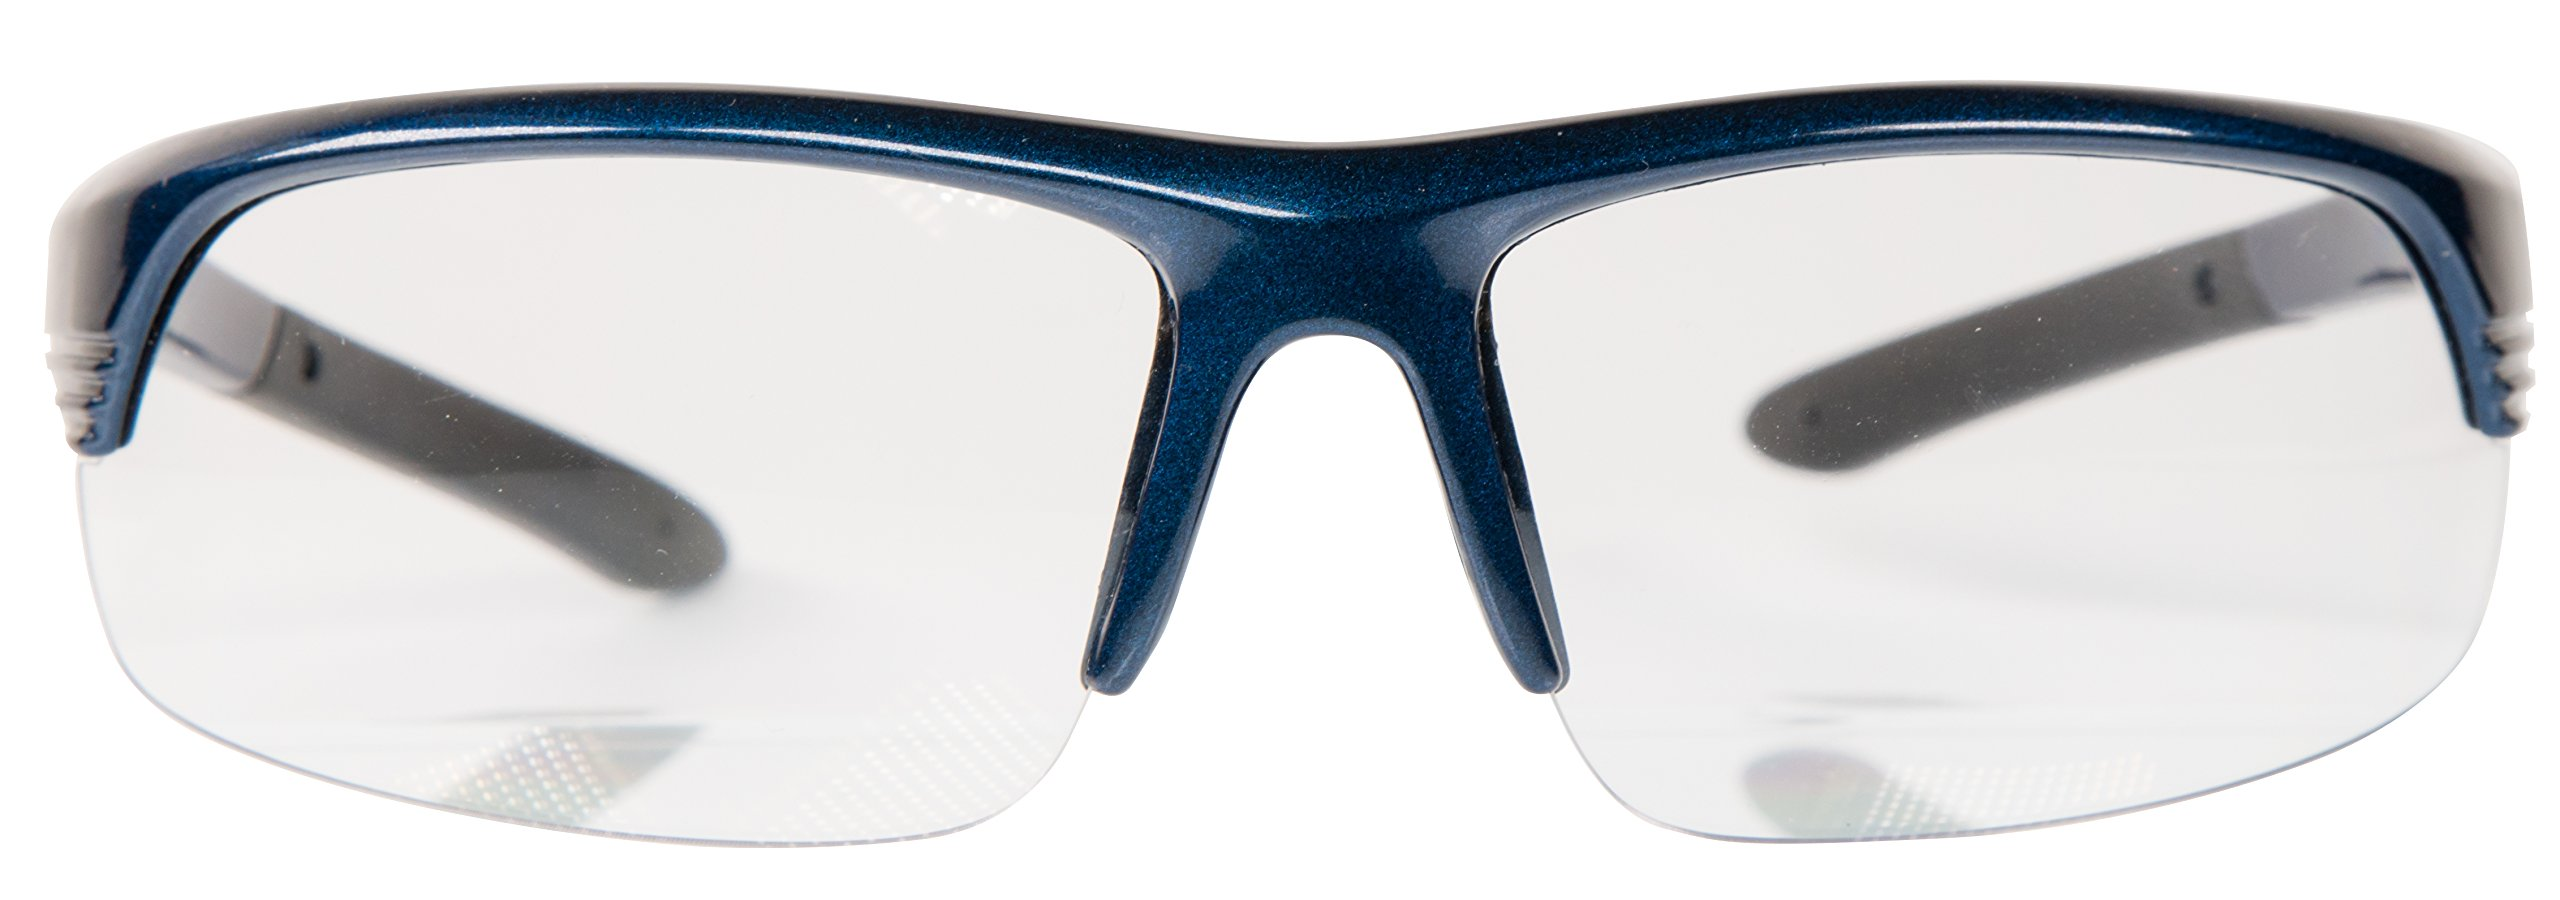 Smith & Wesson Corporal Half Frame Shooting Glasses with No-Slip Rubber, Impact Resistance and Storage Bag for Shooting, Working and Everyday Use by SMITH & WESSON